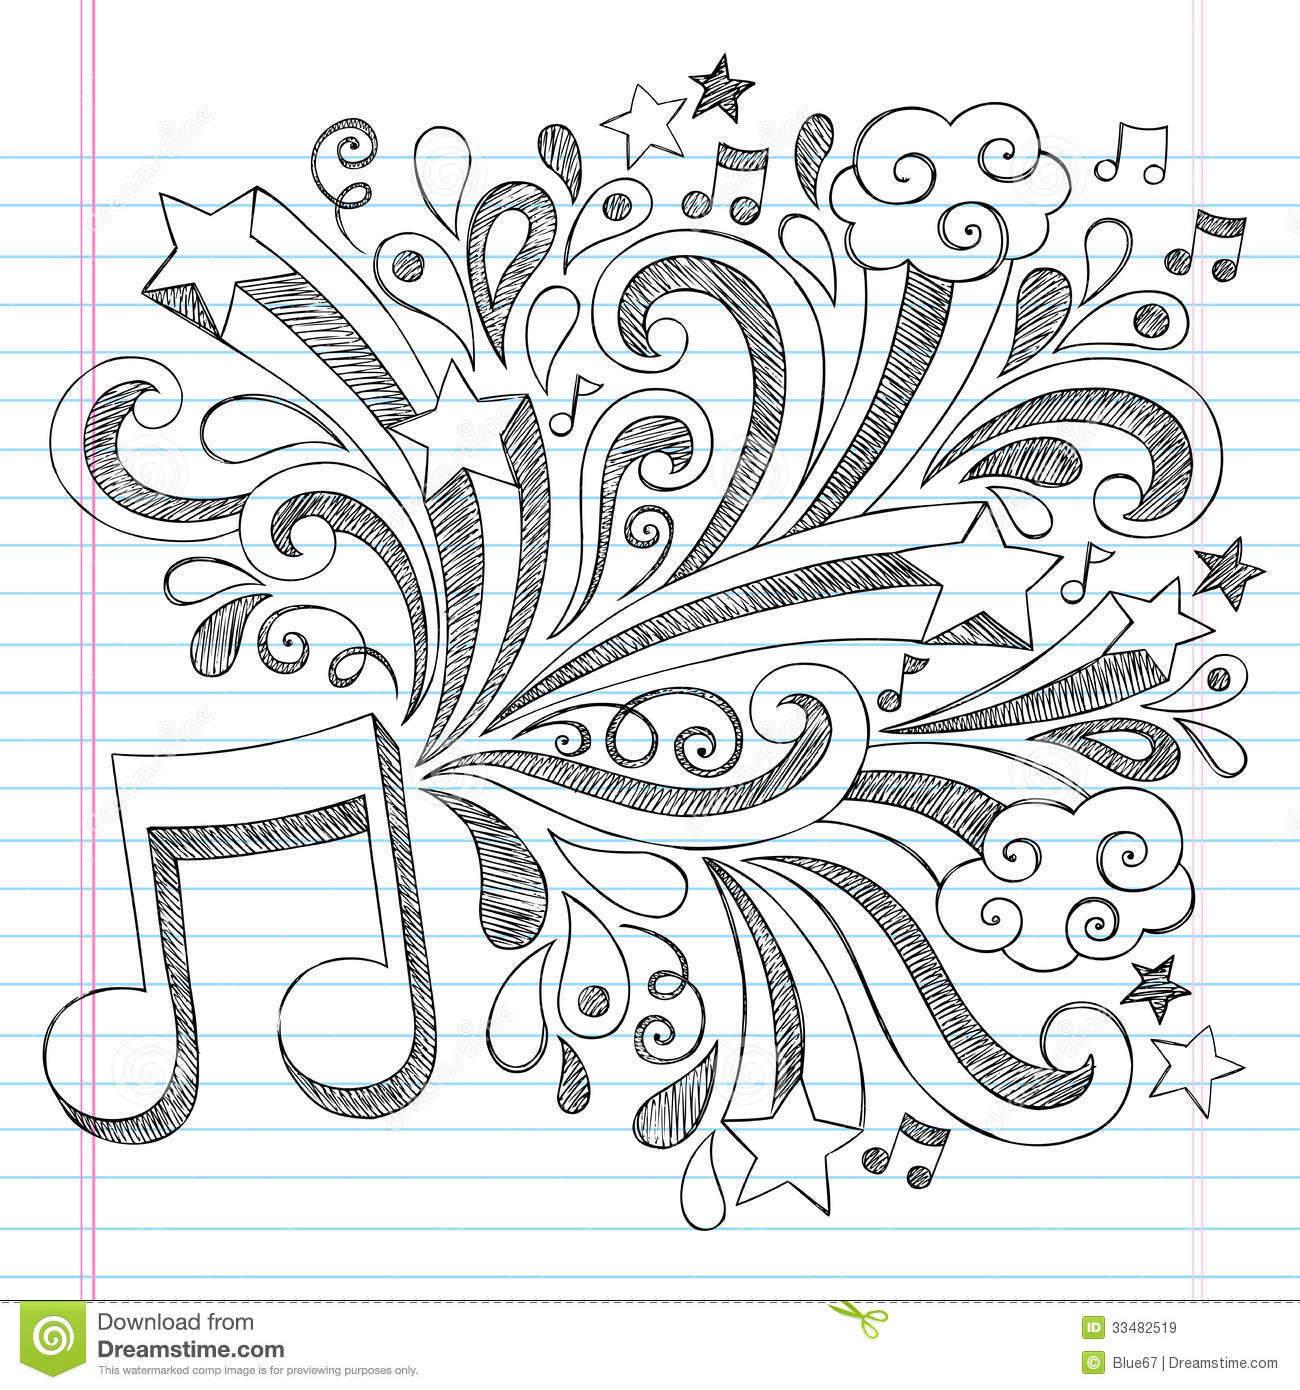 Music Note Sketchy Notebook Doodle Vector Illustra Royalty Free Stock ...